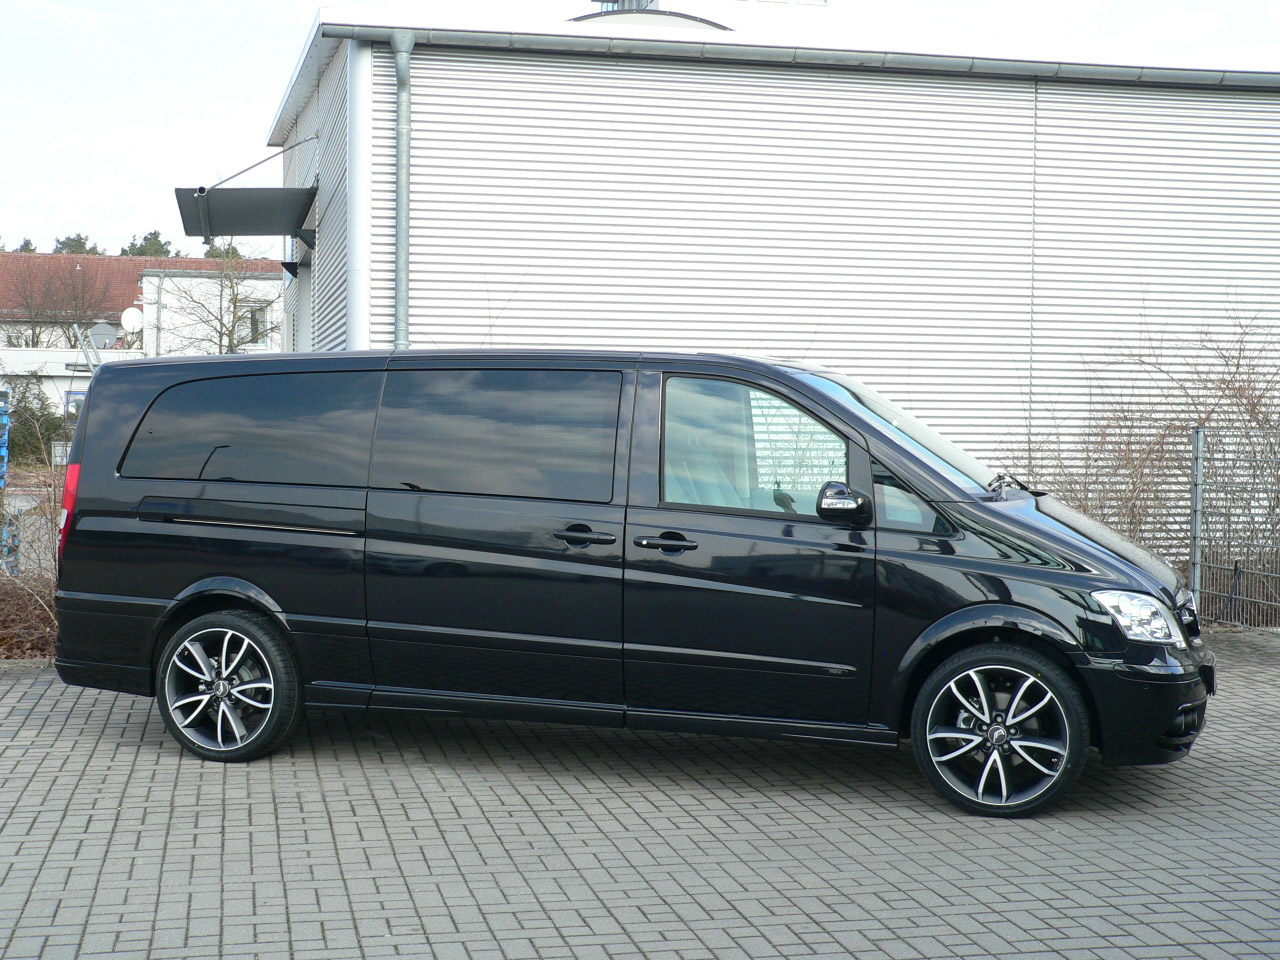 a r t tuning beutifies the mercedes benz viano. Black Bedroom Furniture Sets. Home Design Ideas